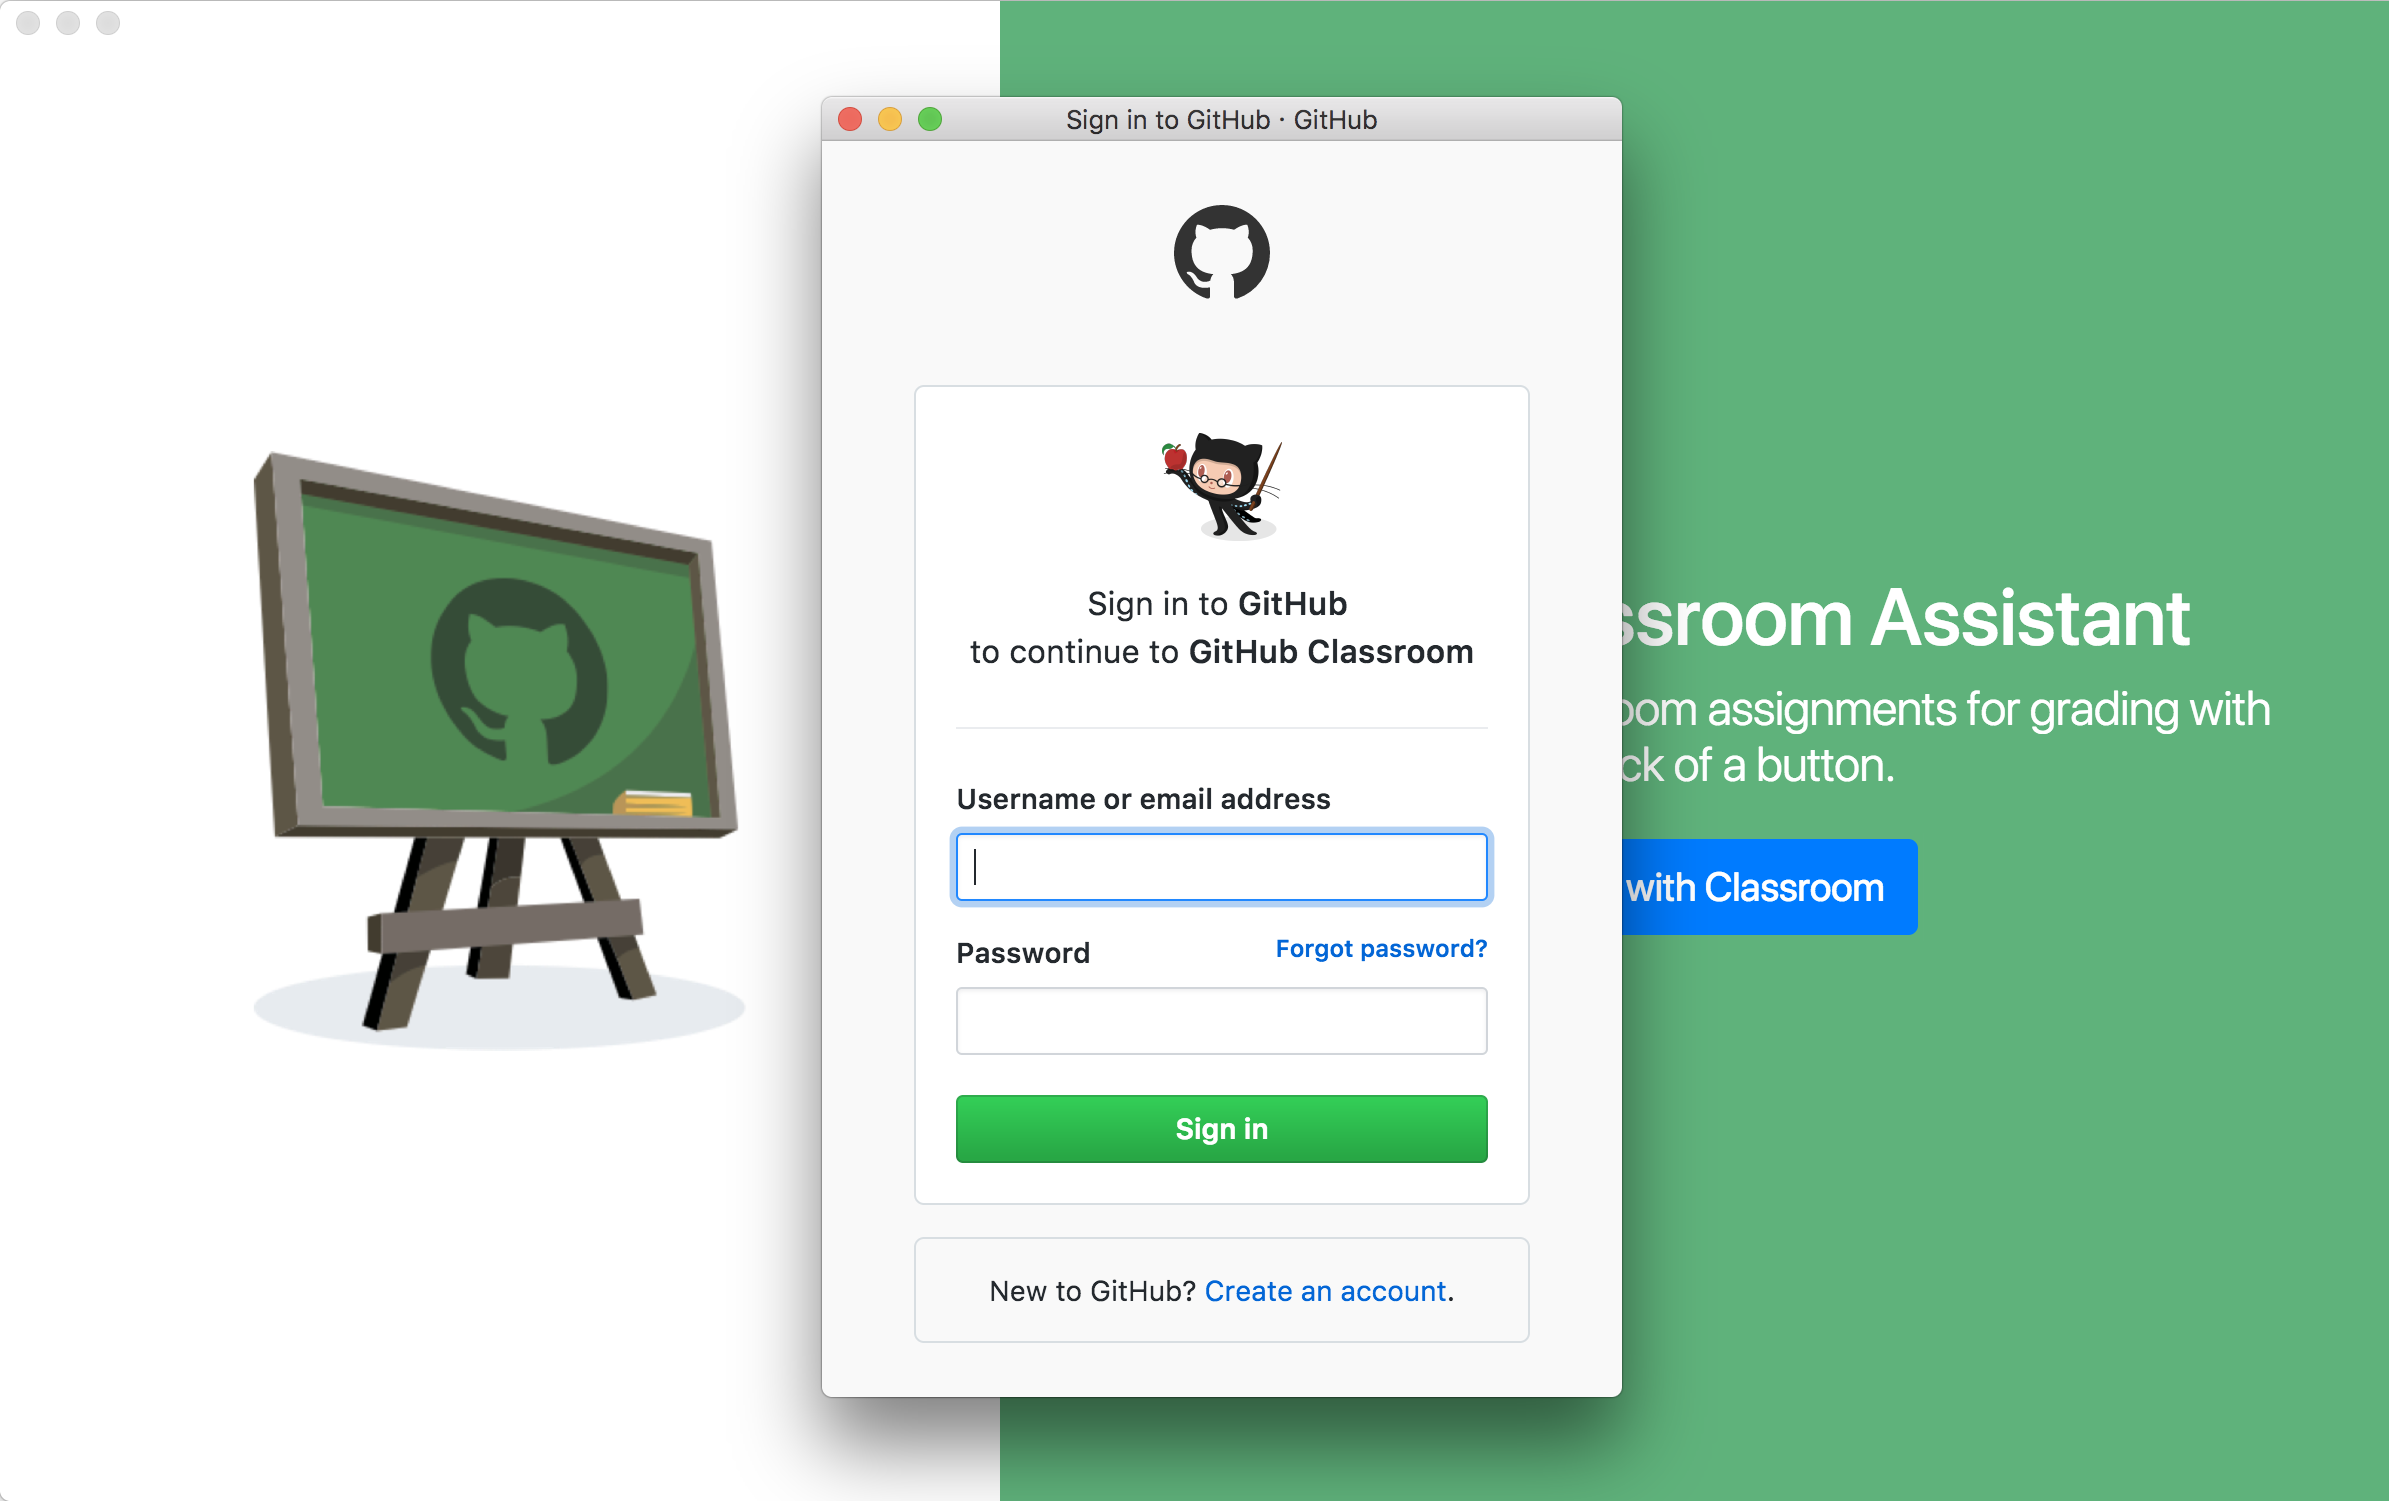 Signing in to GitHub to use Classroom Assistant